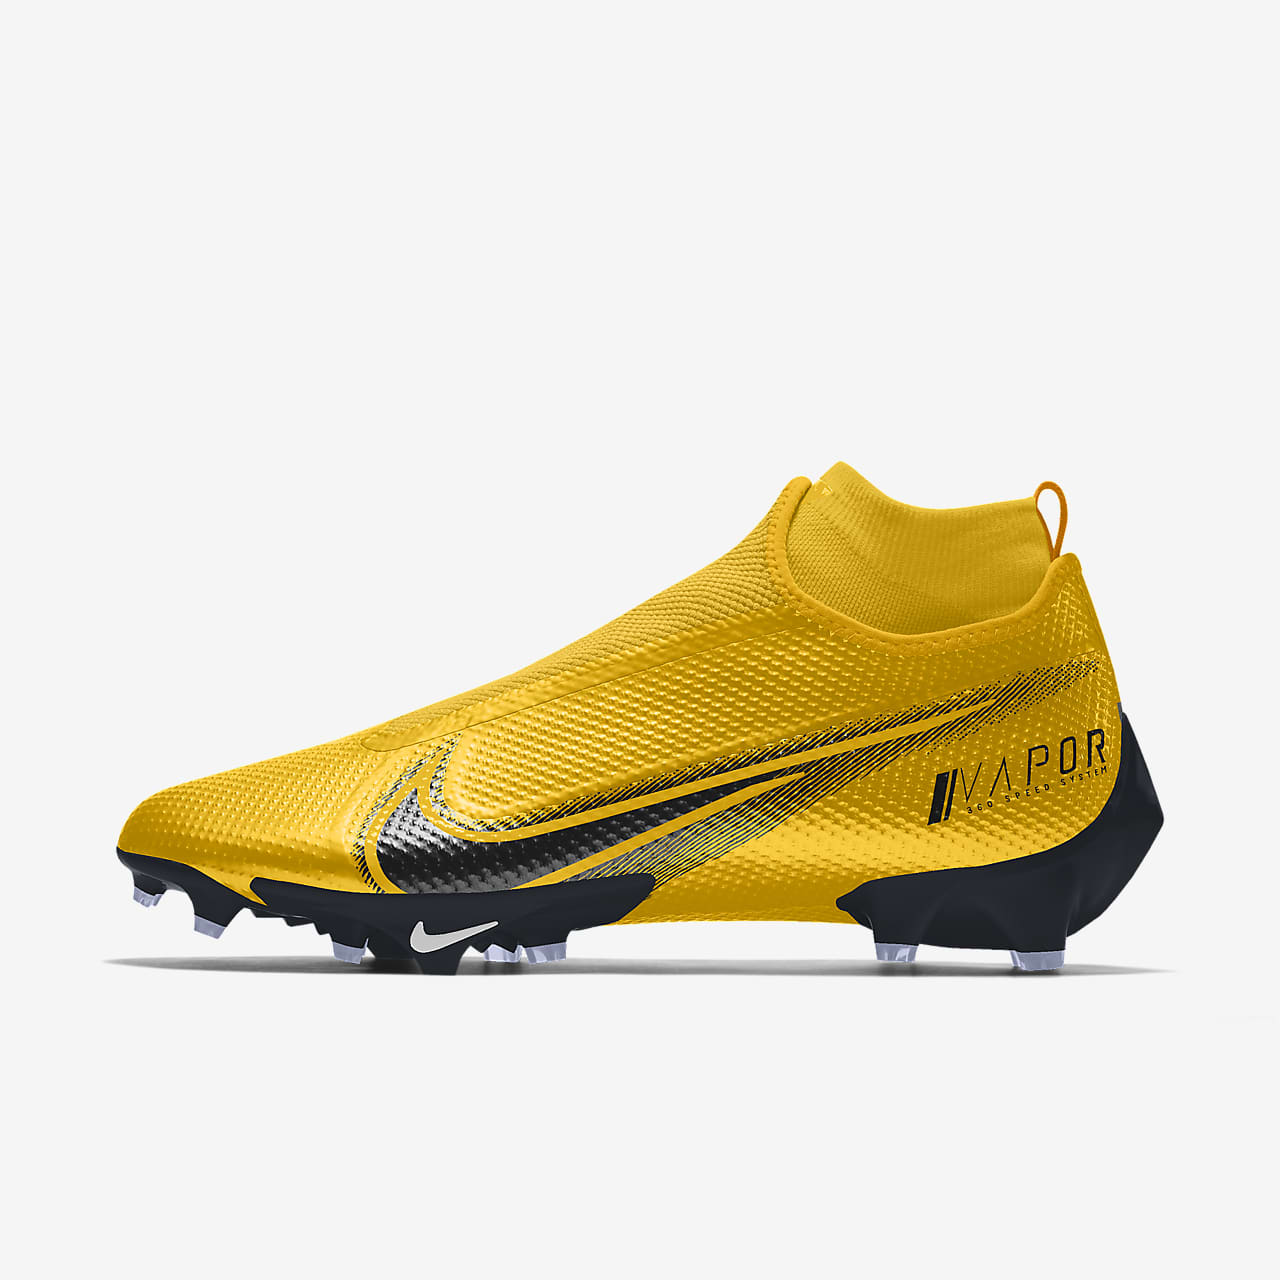 Nike Vapor Edge Pro 360 By You Custom Football Cleat